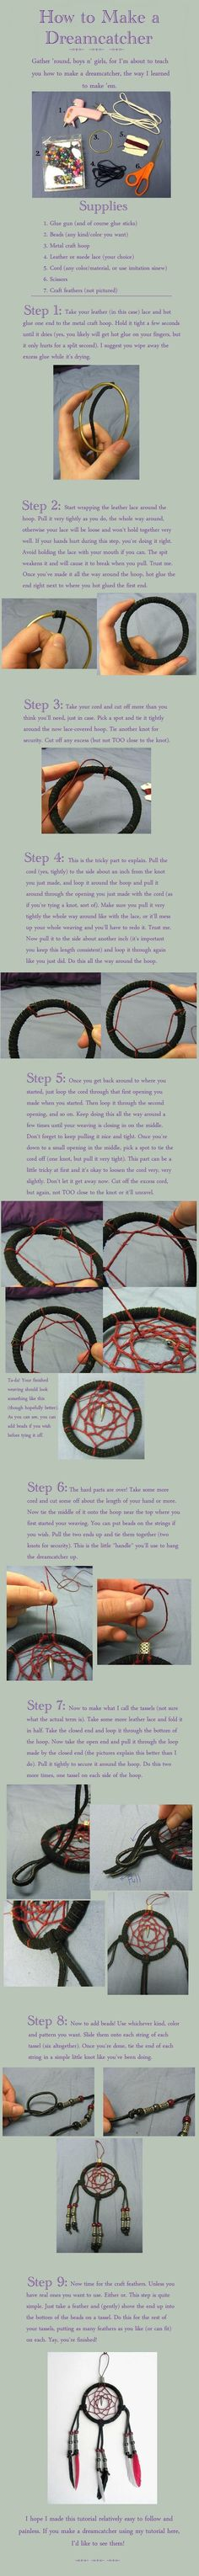 DIY/Tutorials/Crafts / How to Make a Dreamcatcher